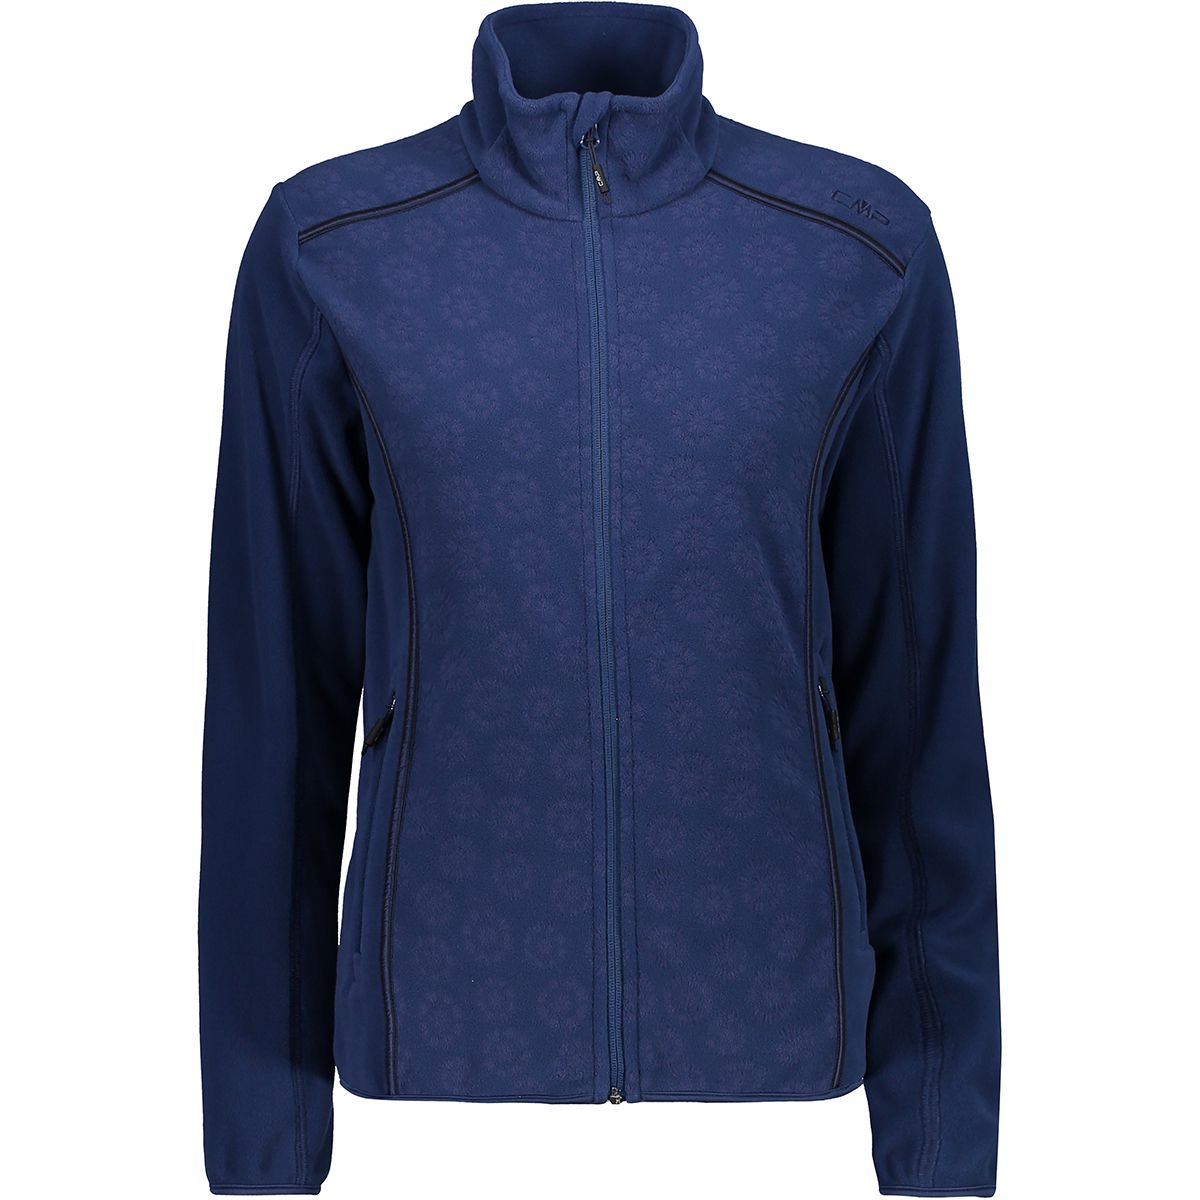 CMP Damen Printed Fleece Jacke (Größe XL, Blau) | Fleecejacken > Damen